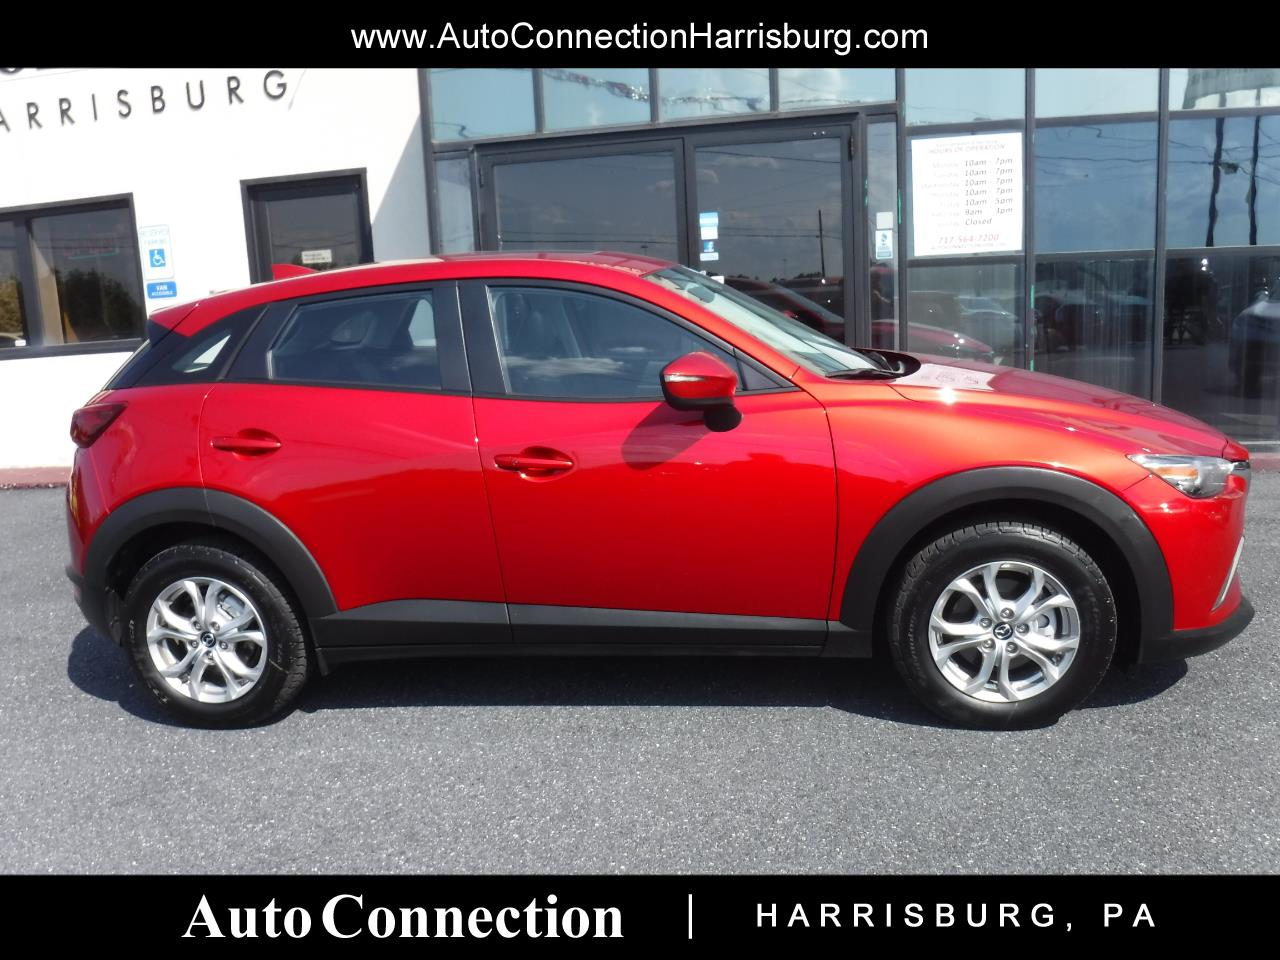 2016 Mazda CX-3 AWD 4dr Touring